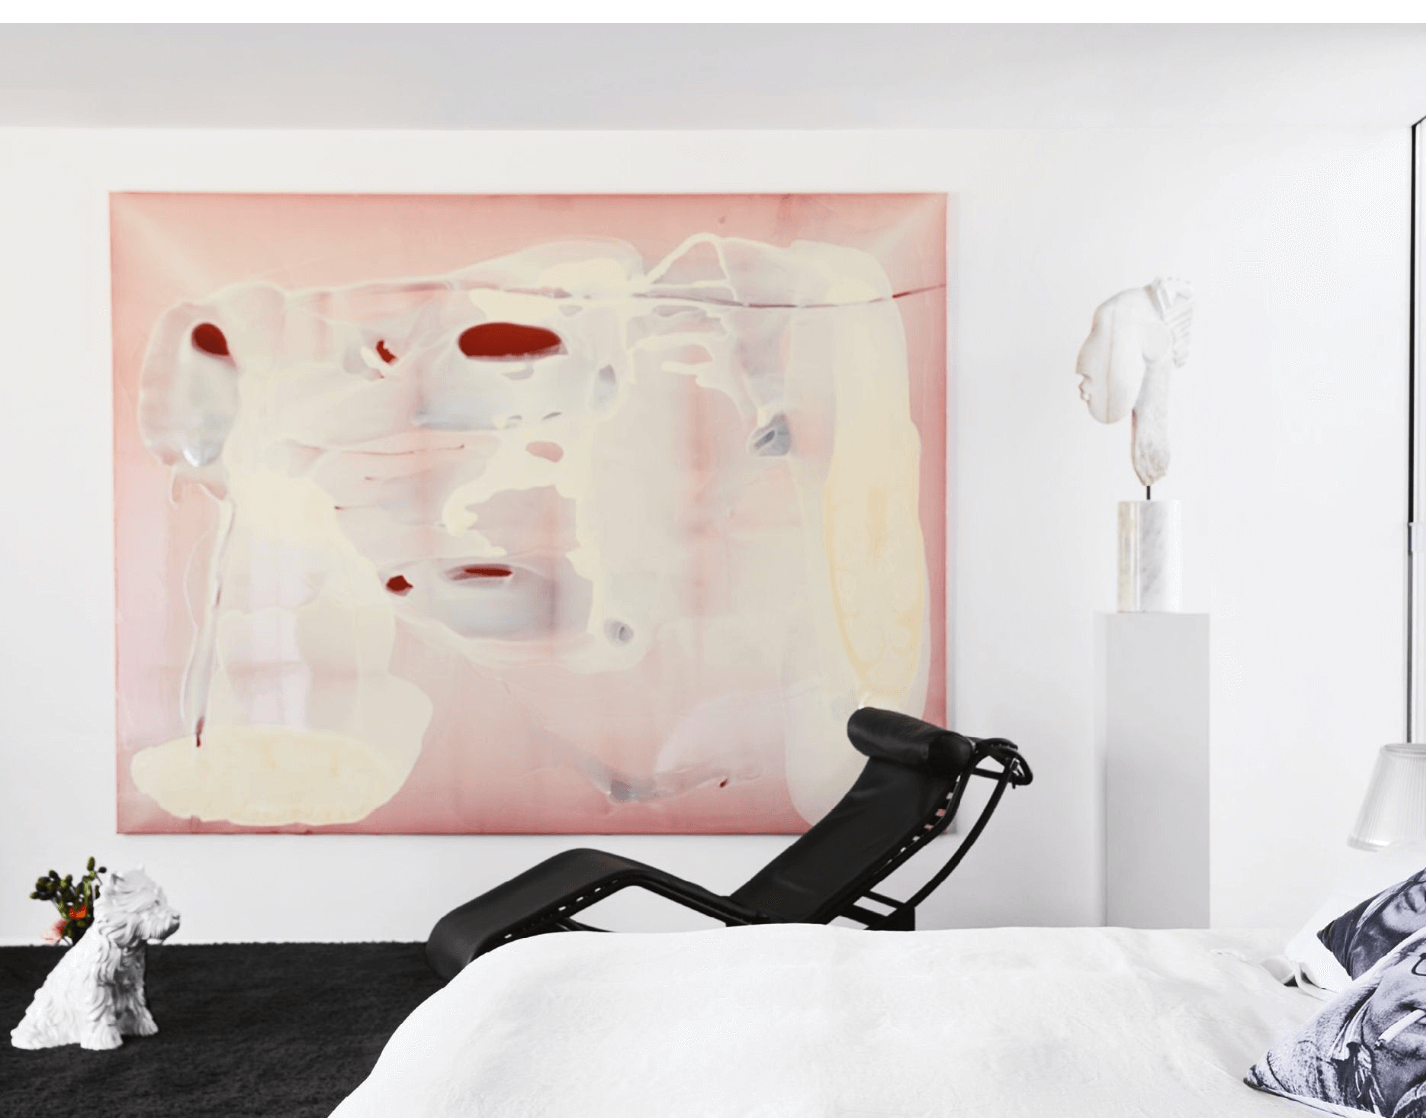 Art Gallery Bedroom, Cassina LC4 Chaise, Jeff Koons ceramic puppy vase, Joel Elenberg bust sculpture, Dale Frank pink painting, black and white space